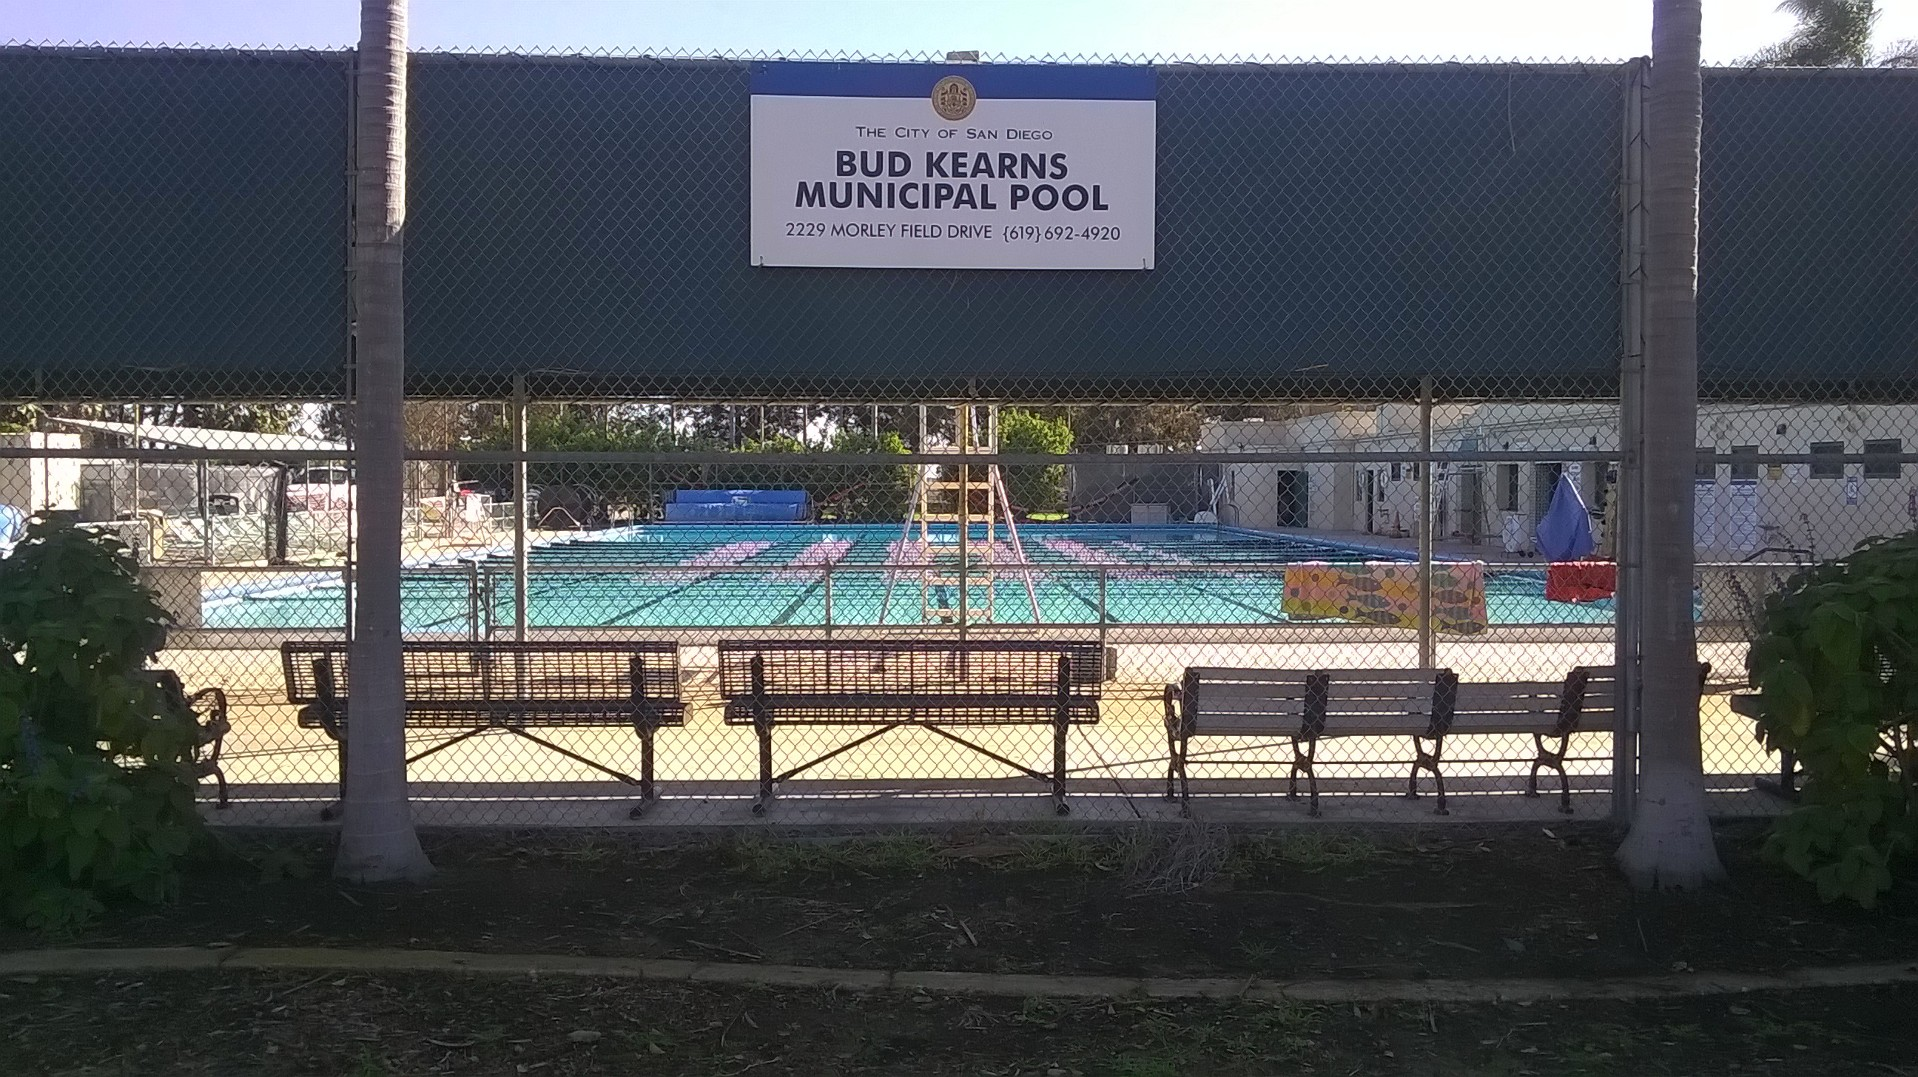 0229 - Bud Kearns Municipal Pool - San Diego